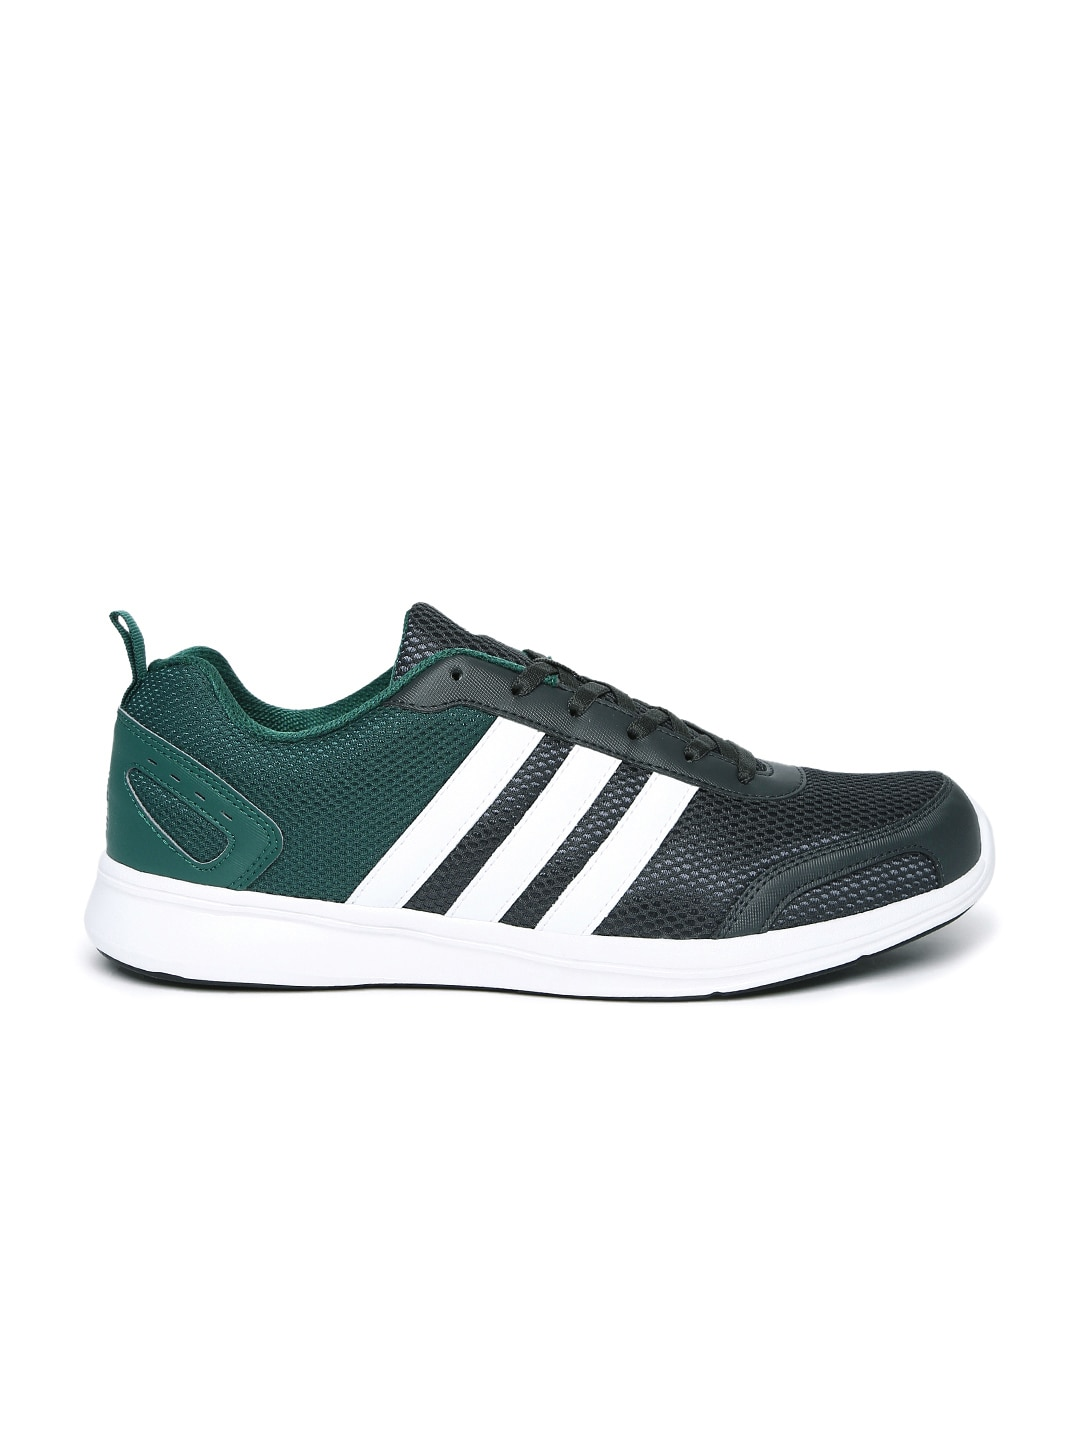 Adidas Shoes Images New